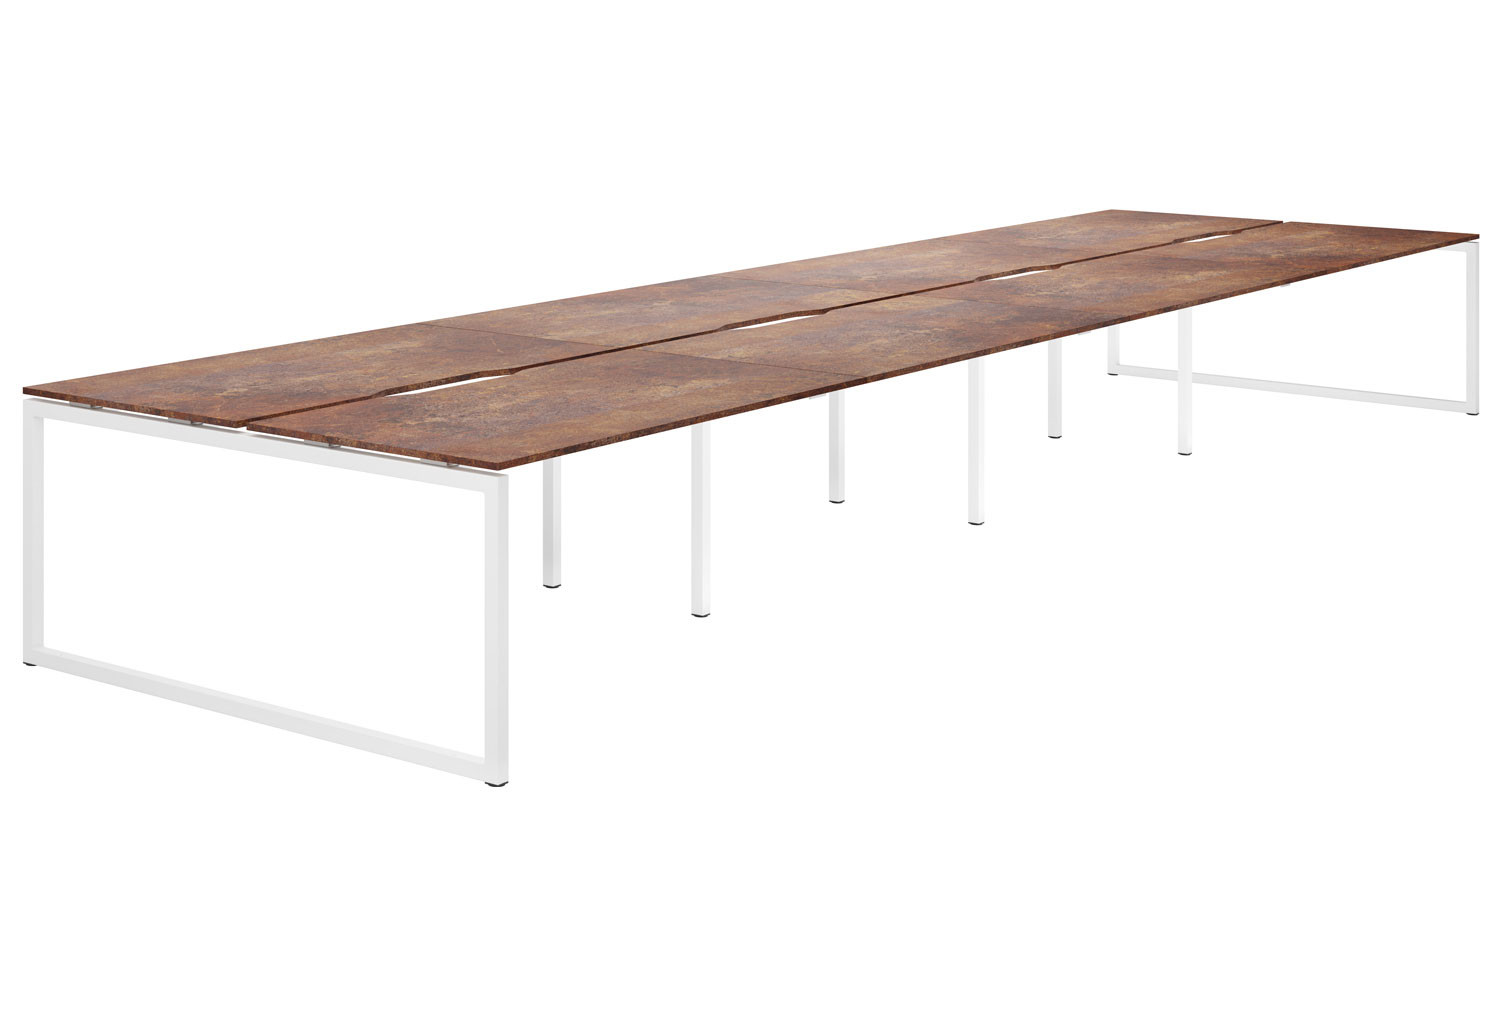 Lasso Hooped Leg 8 Person Back To Back Bench Desk (Rusted Steel)